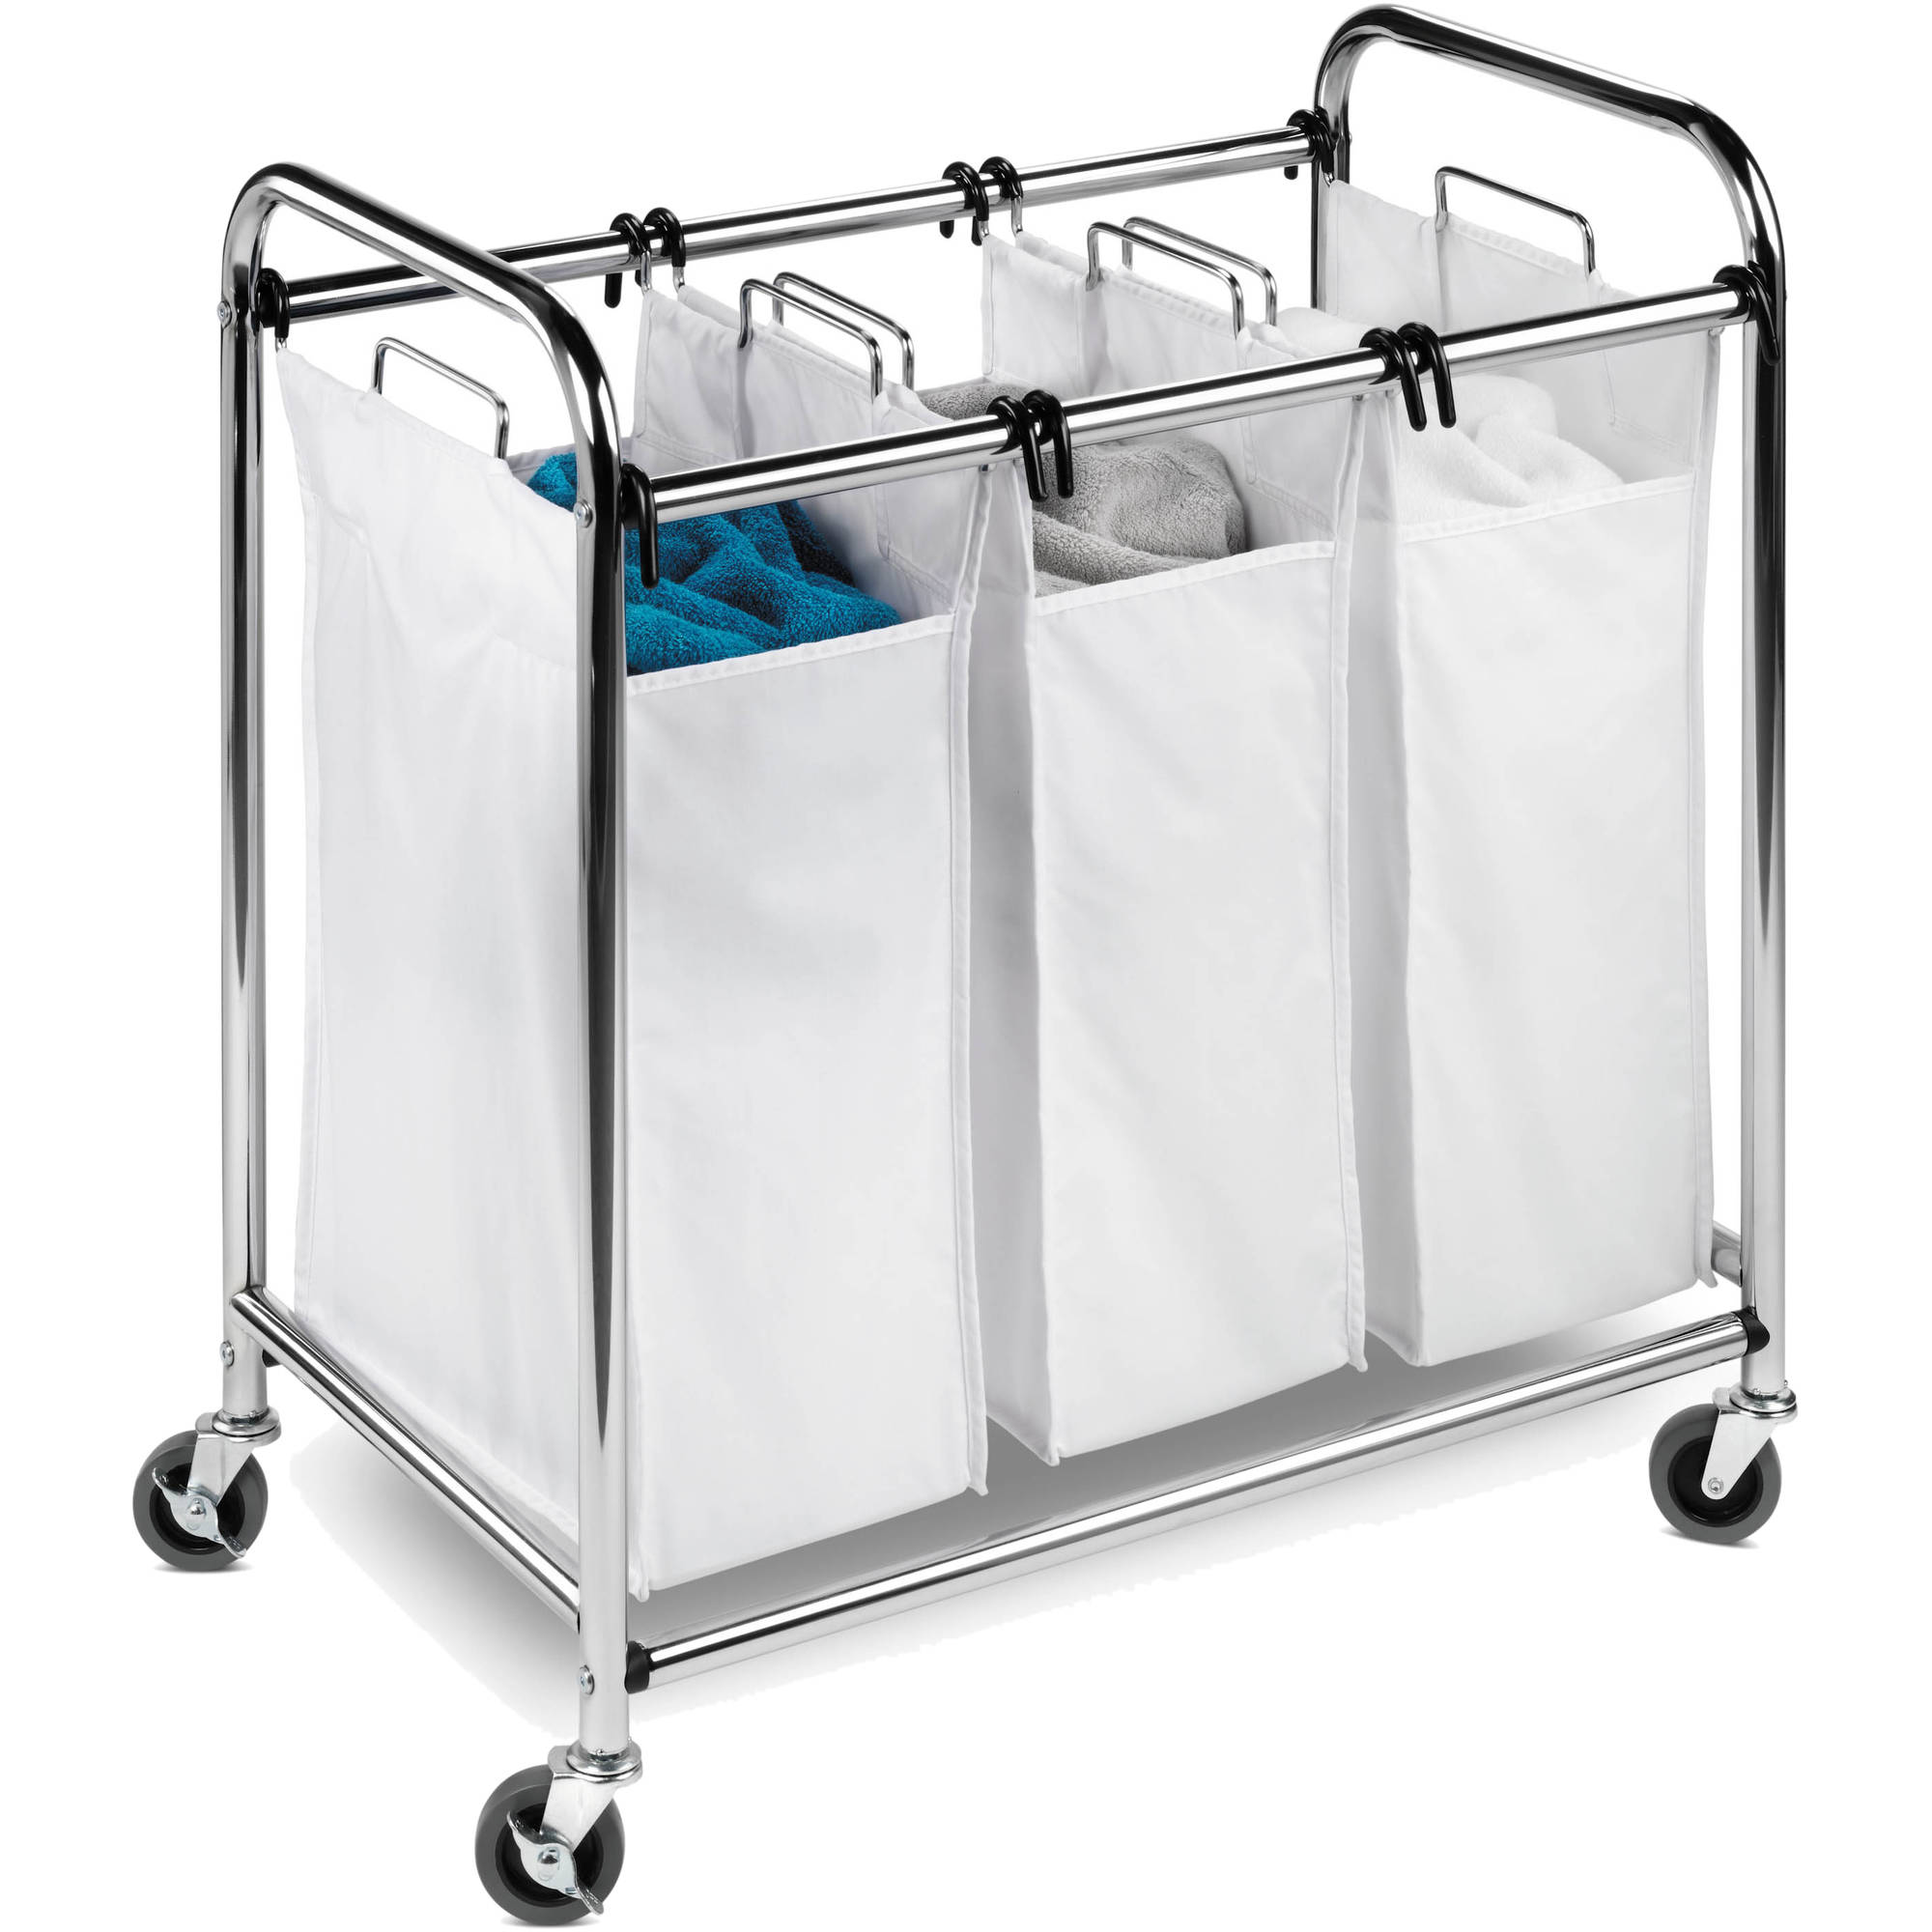 Honey Can Do Commercial-Grade Triple Laundry Sorter, Chrome/White -  Traveller Location